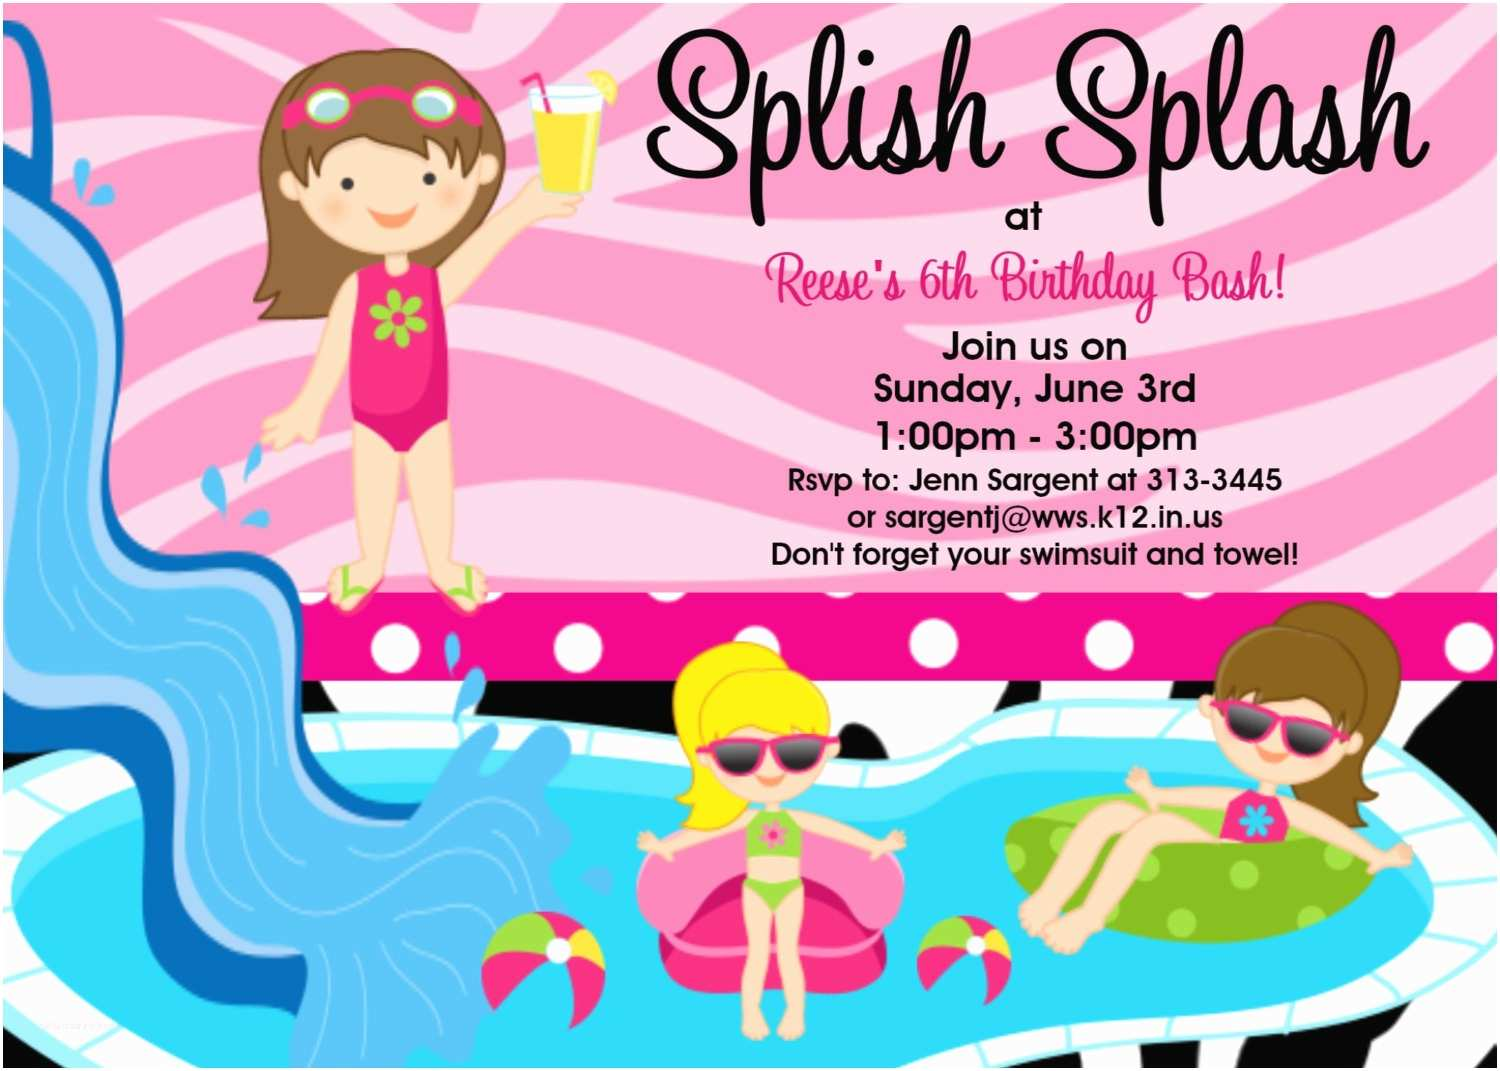 Pool Party Invitation Wording 13th Birthday Ideas Bagvania Free